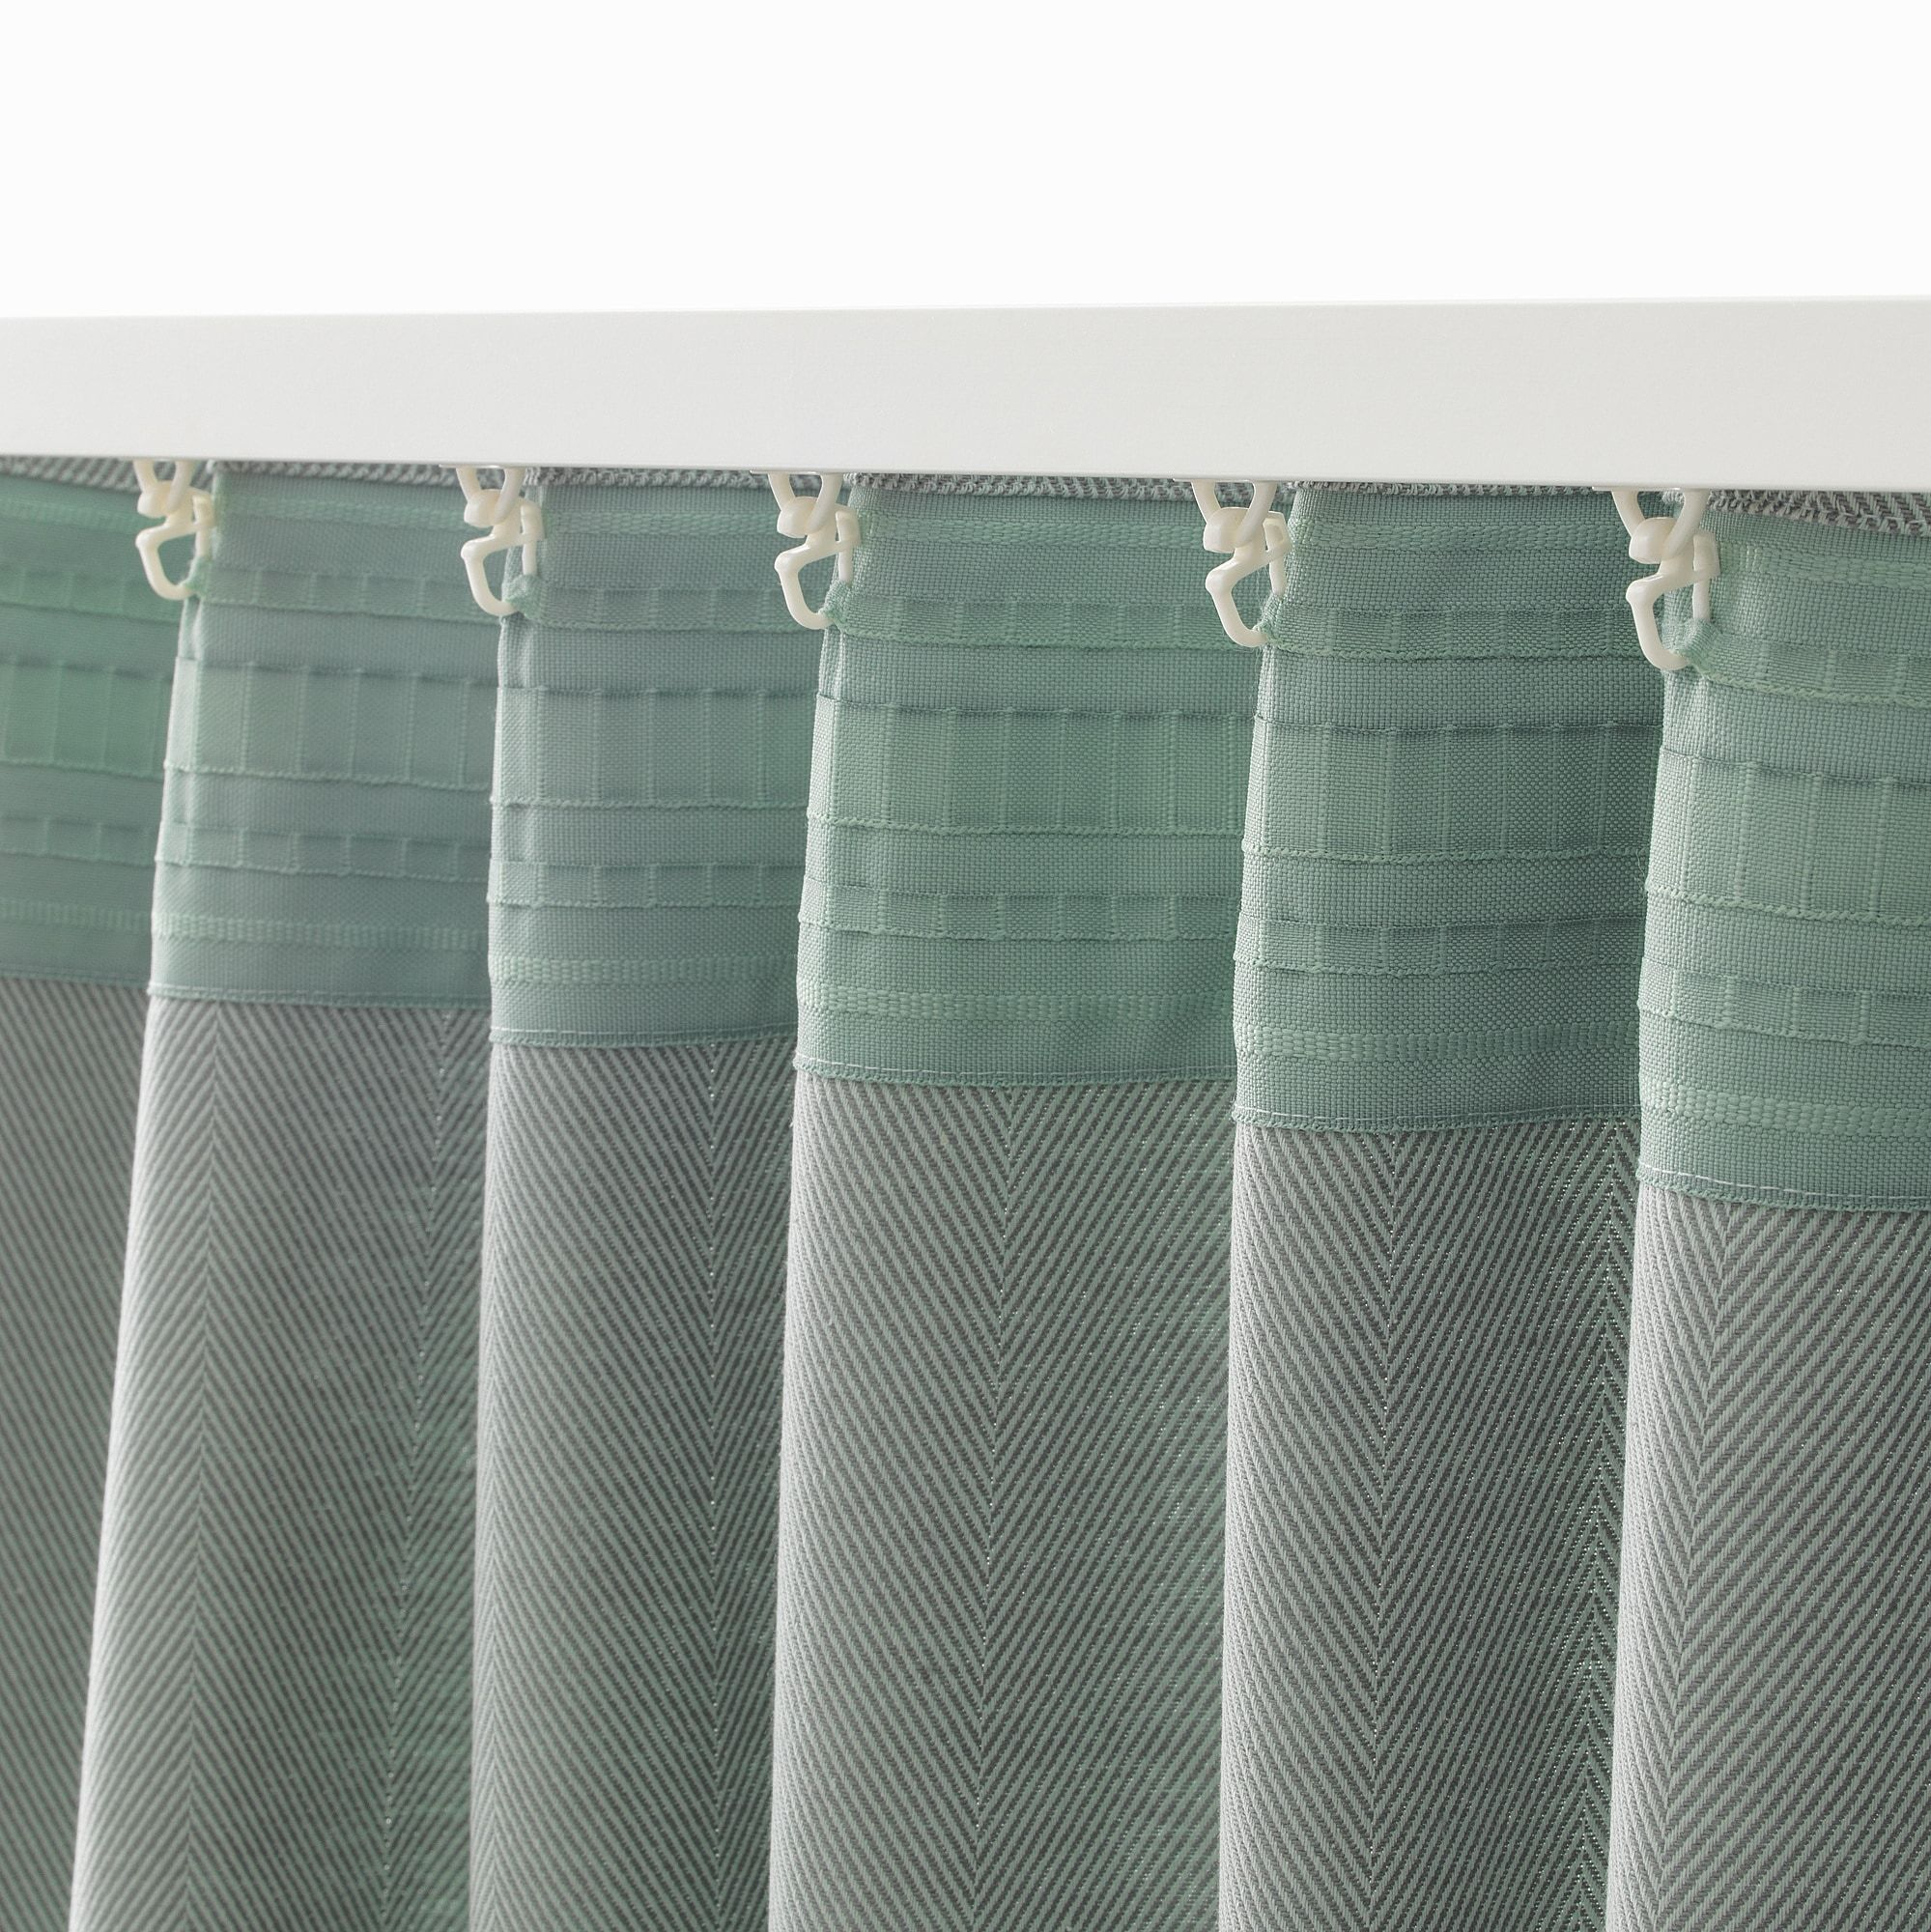 Scheibengardinen Meterware Baumwolle Ikea Tibast Curtains 1 Pair Green Dekoration In 2019